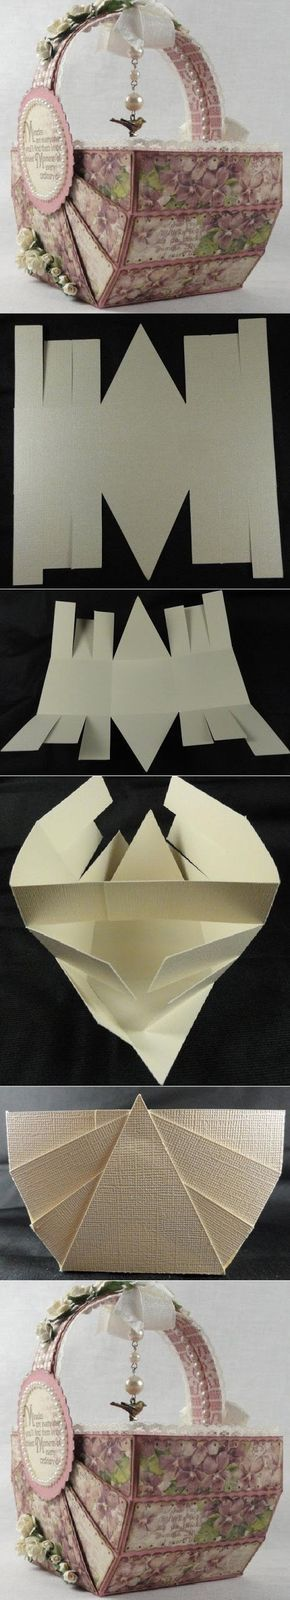 DIY : How To Make a Paper Basket